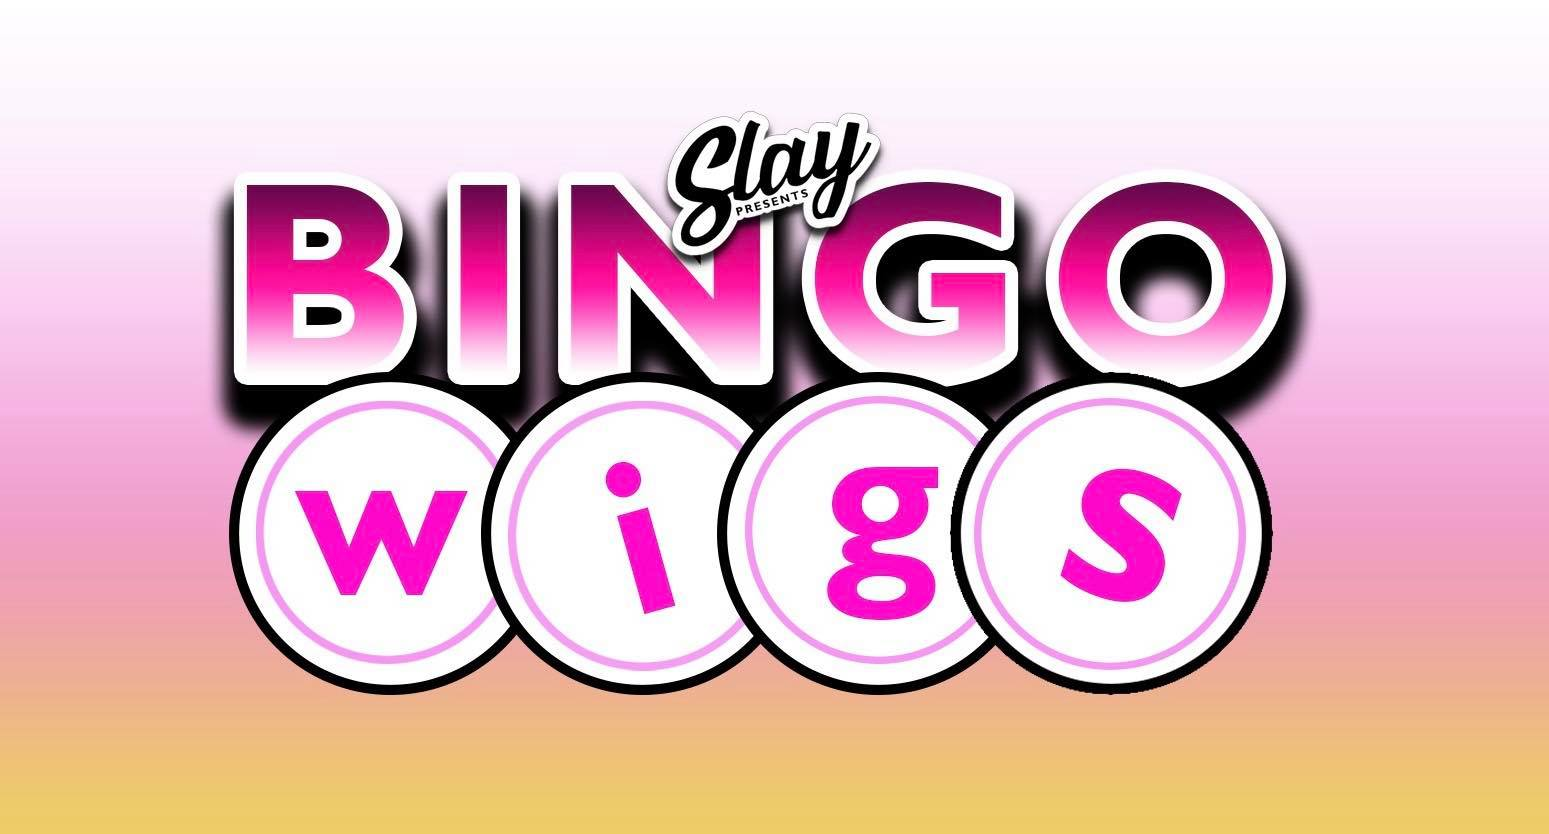 DRAG SHOW & BINGO: Bingo Wigs at Church - Join Miss Peaches and friends at Church. Bingo Wigs is a fun Drag Show & Bingo show run by Slay! Presents.Church is also hosting their semi final for Dundee Pride Karaoke Contest tonight!WHEN: Tuesday 17th September at 20:00WHERE: Church, 15 Ward Rd, Dundee DD1 1NDFREE